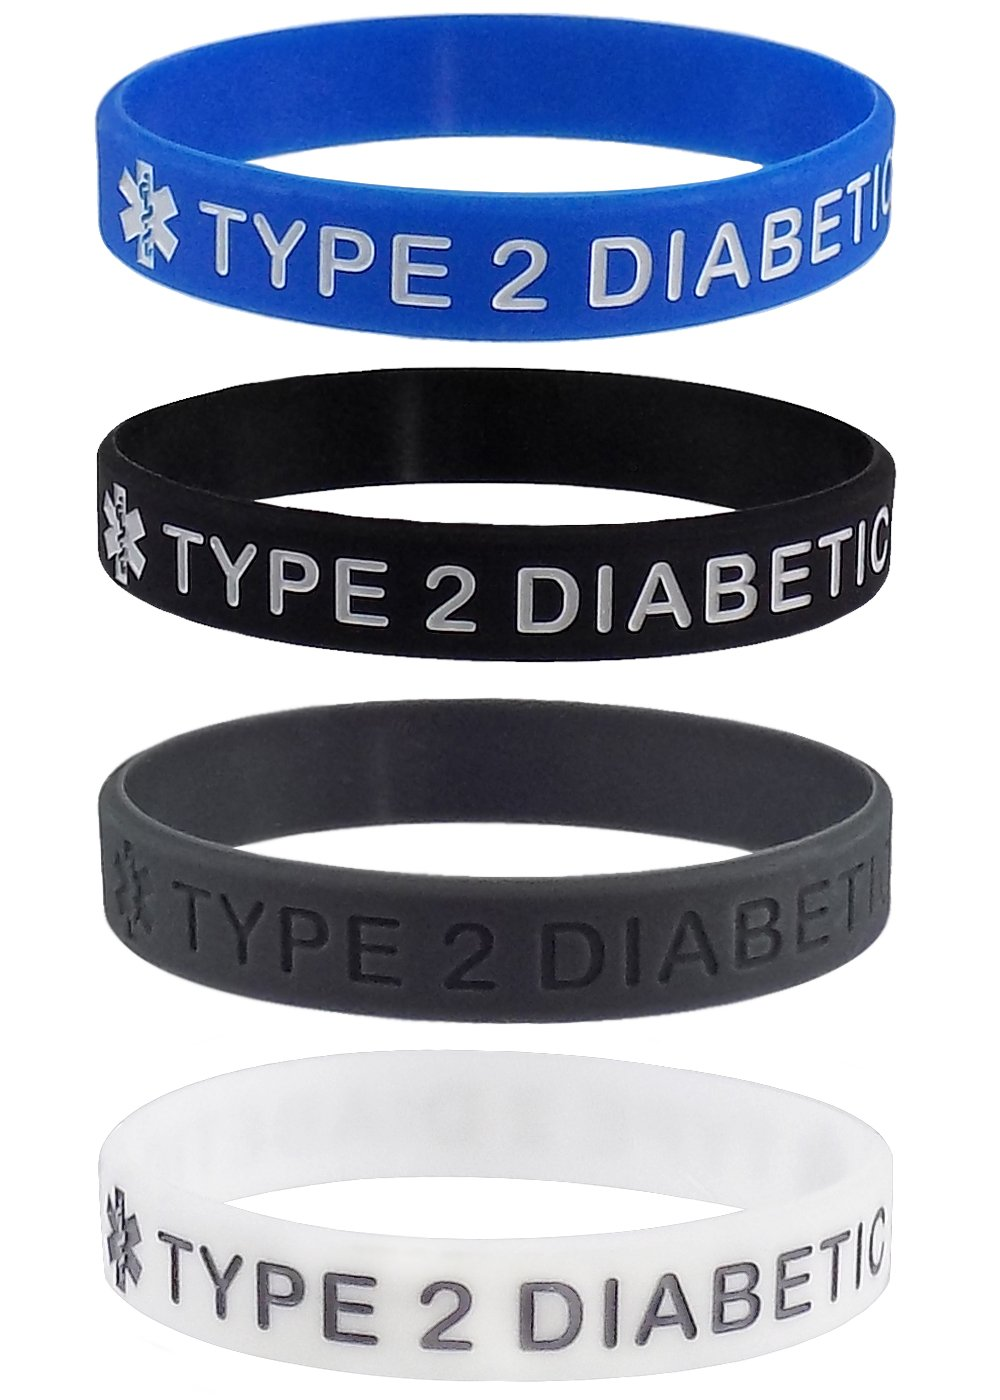 ''TYPE 2 DIABETIC'' Medical Alert ID Silicone Bracelet Wristbands 4 Pack (XL - 8.5 inches)